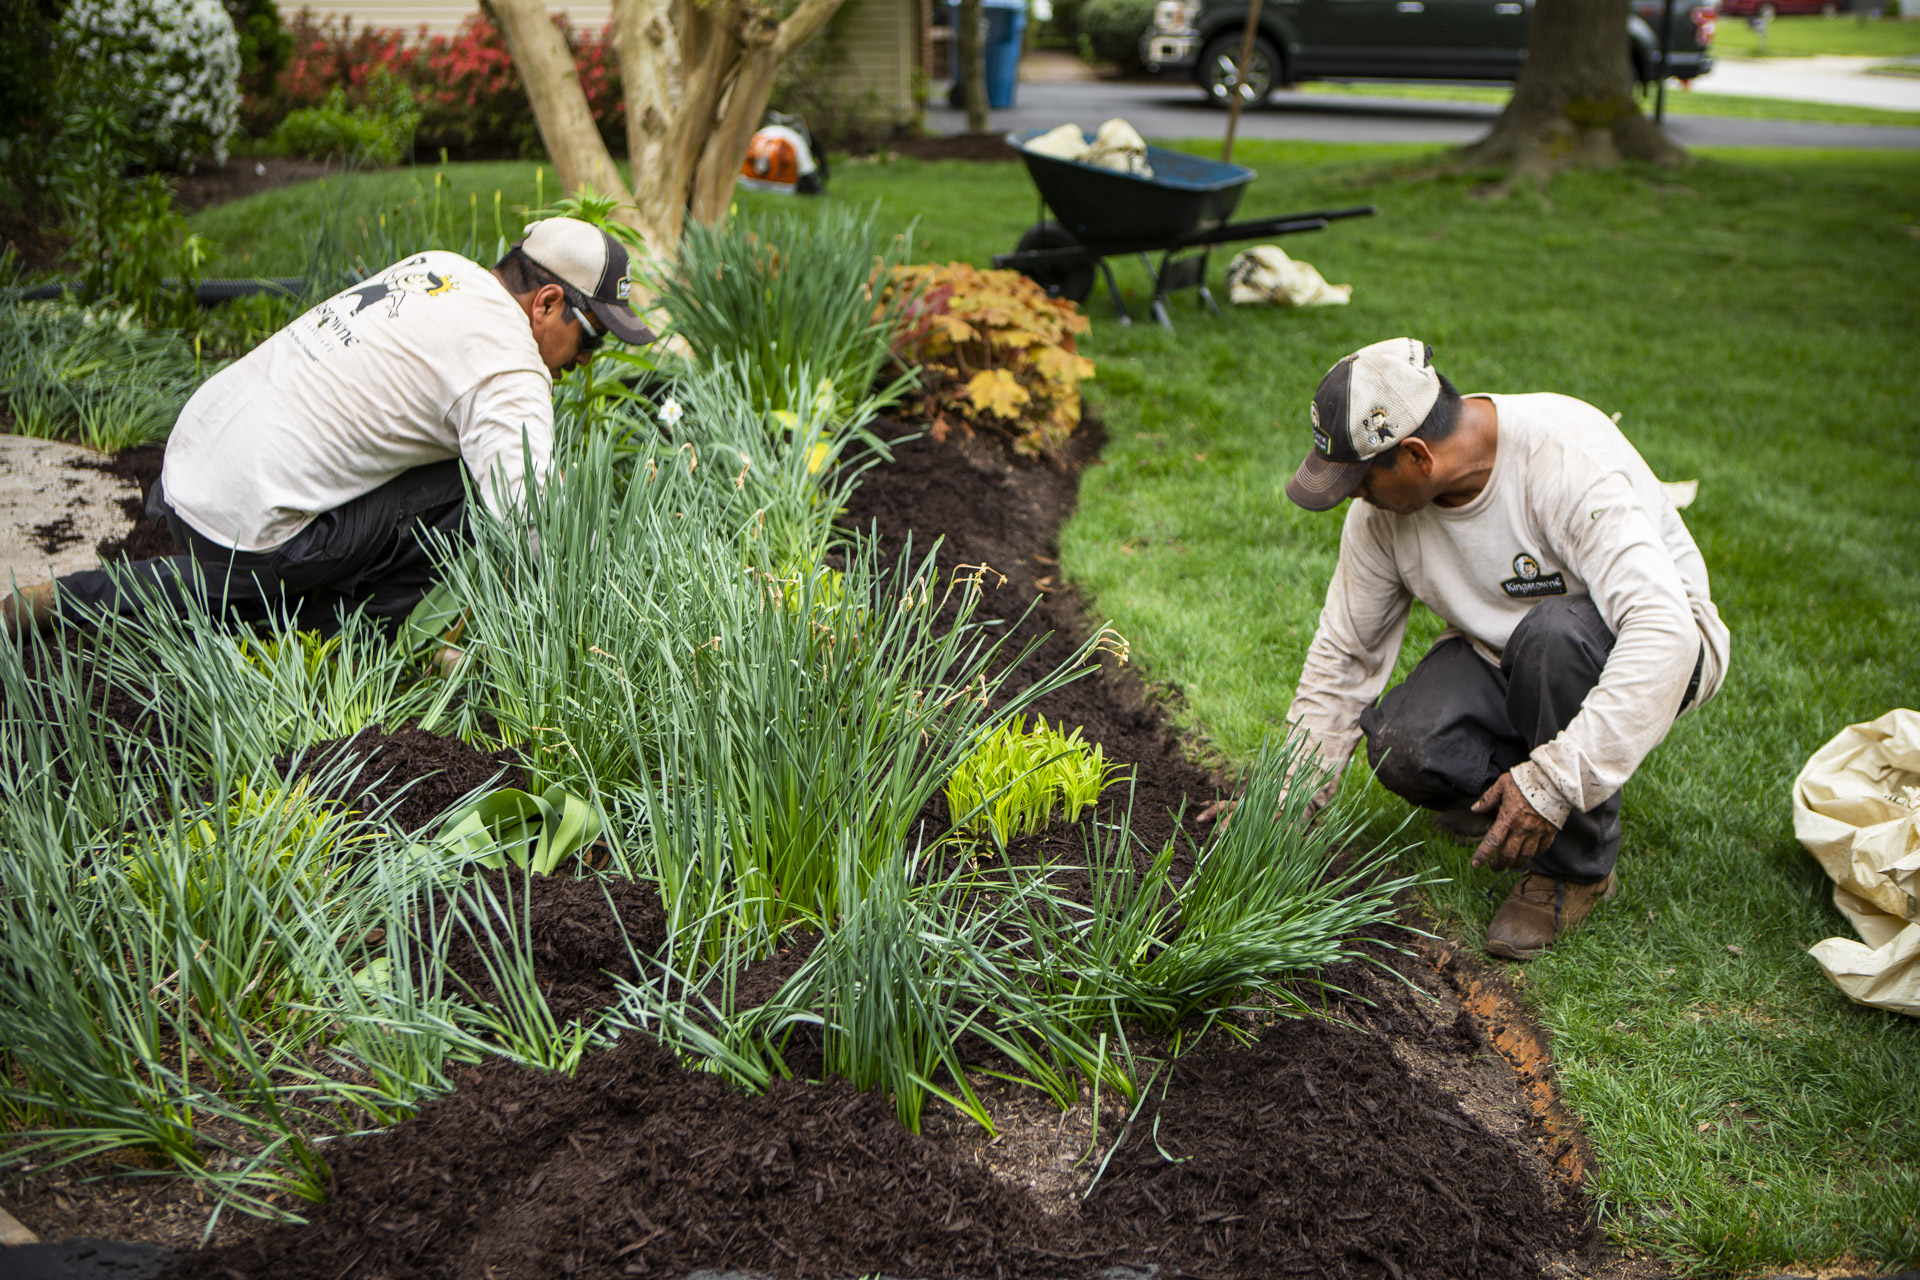 Kingstowne Lawn & Landscape maintenance technicians planting